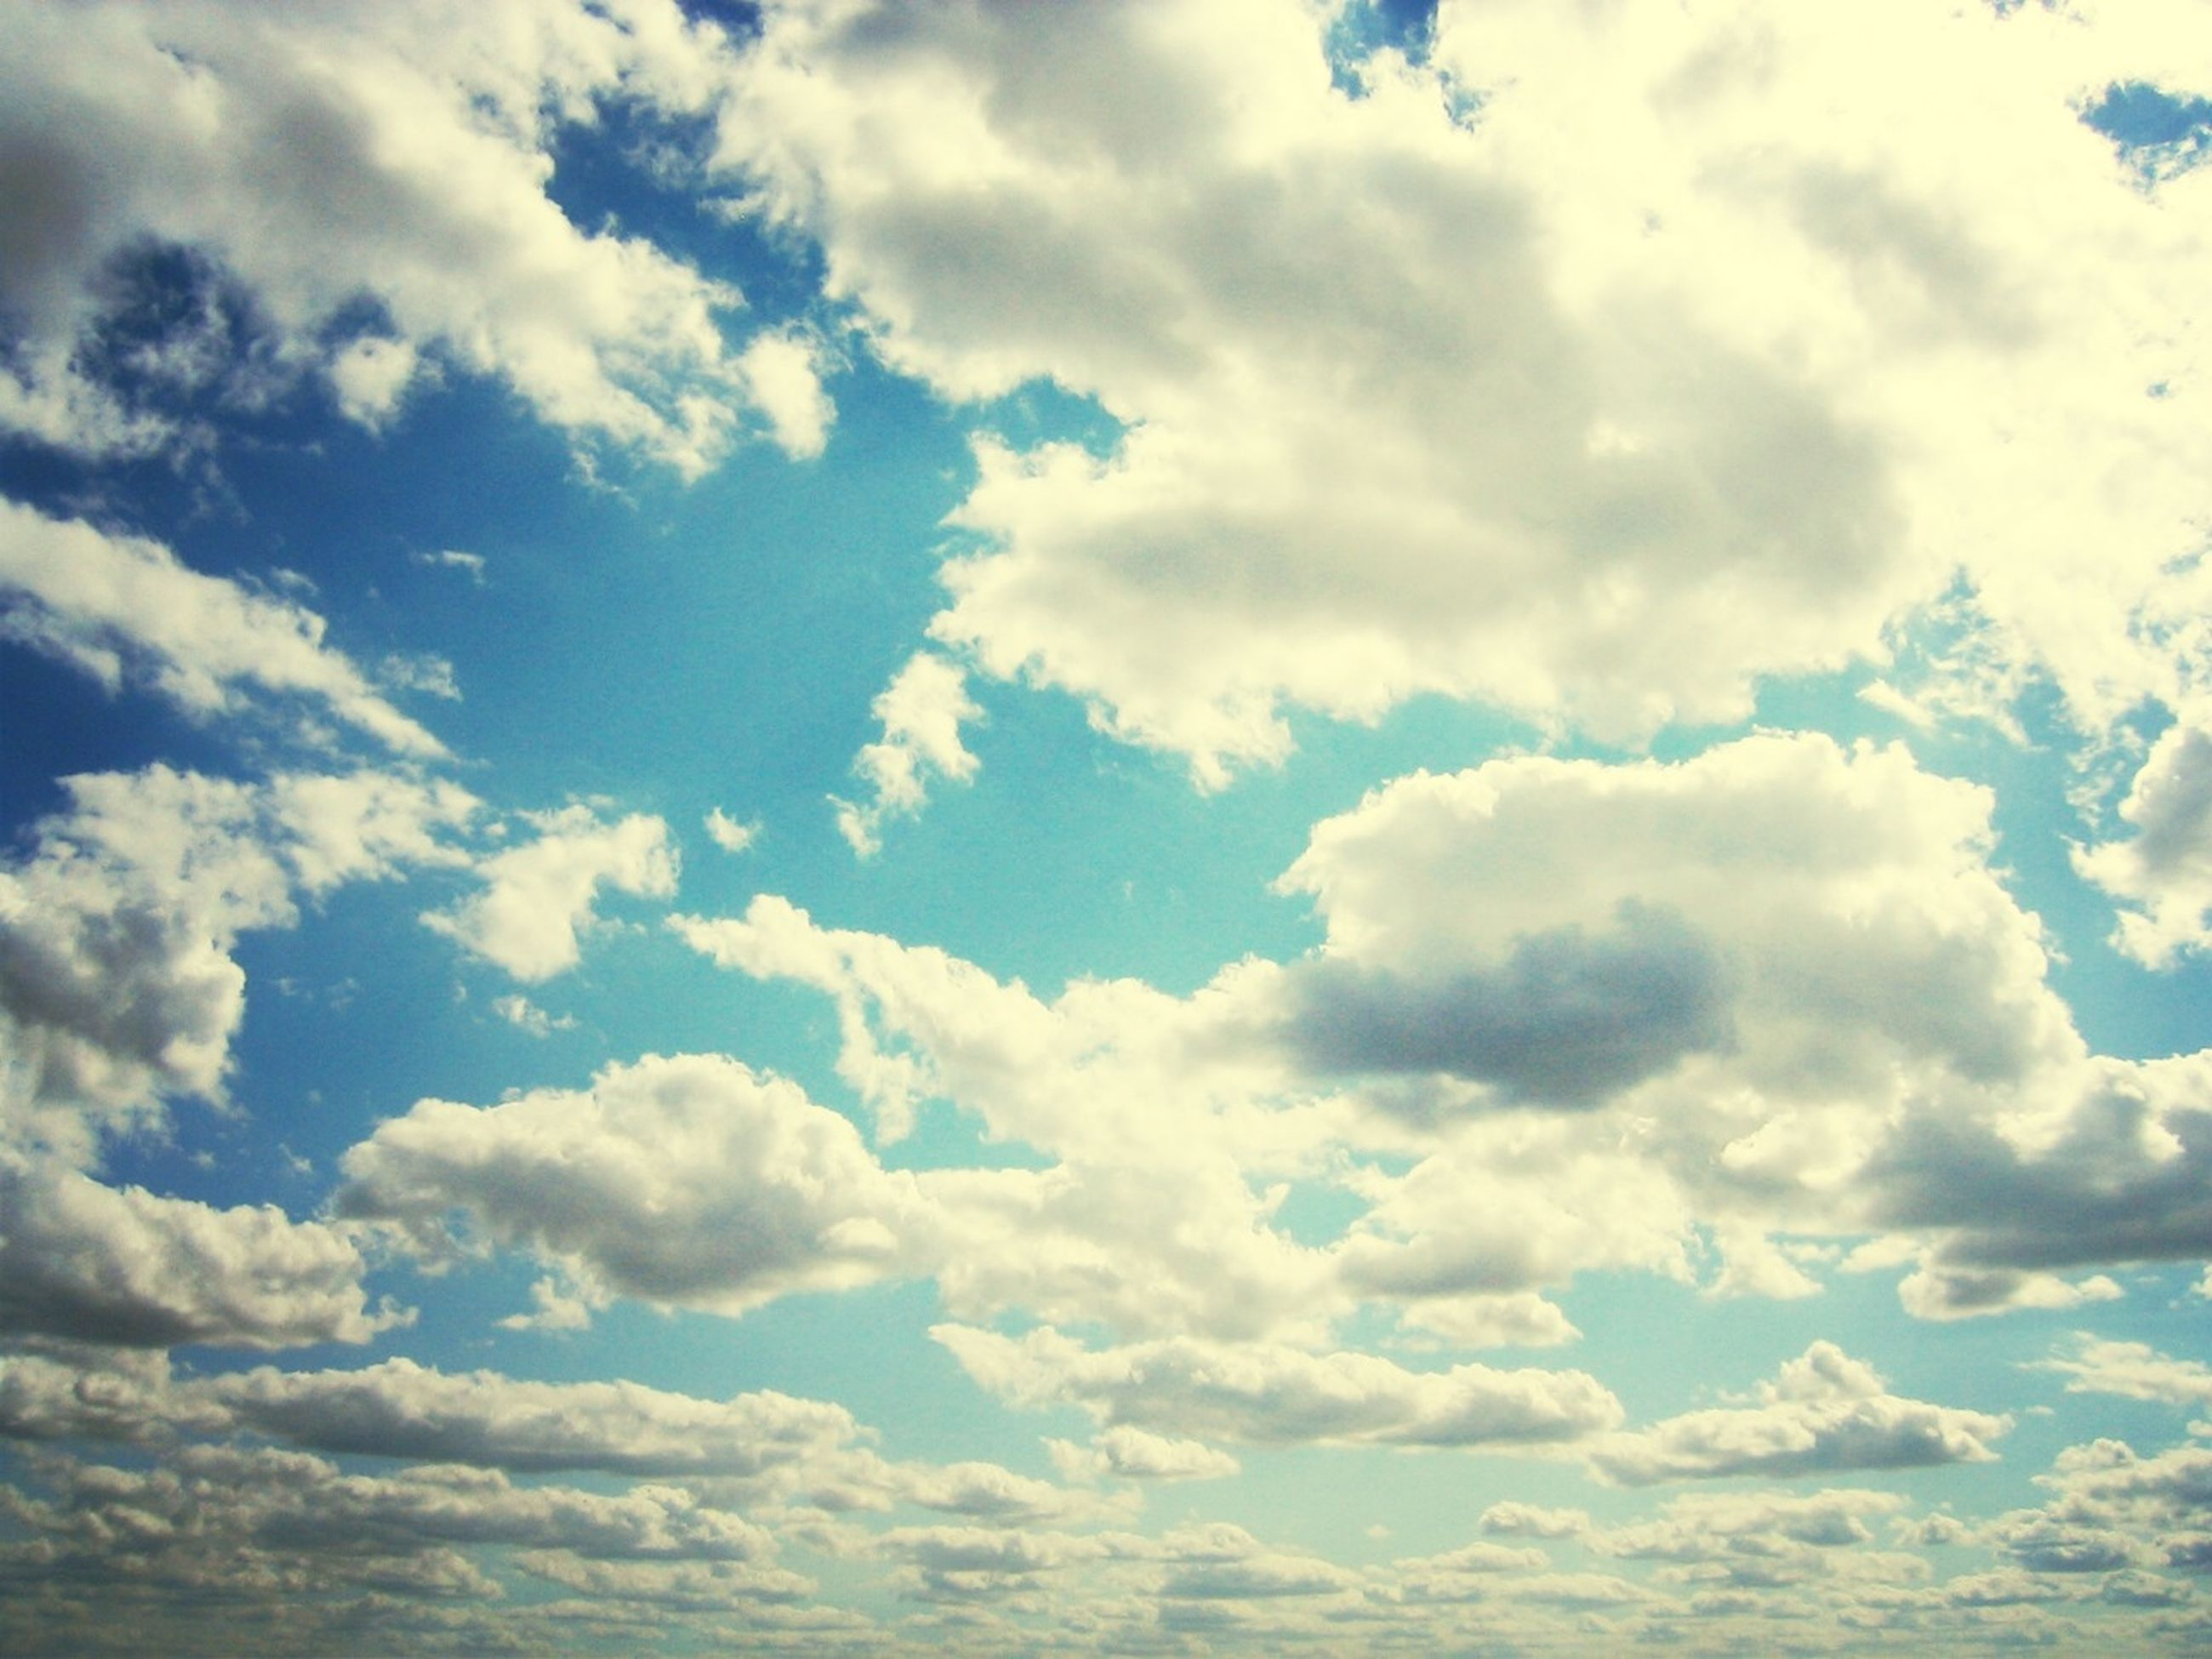 sky, cloud - sky, tranquility, beauty in nature, scenics, tranquil scene, cloudy, sky only, nature, cloudscape, blue, backgrounds, cloud, low angle view, idyllic, white color, full frame, day, fluffy, outdoors